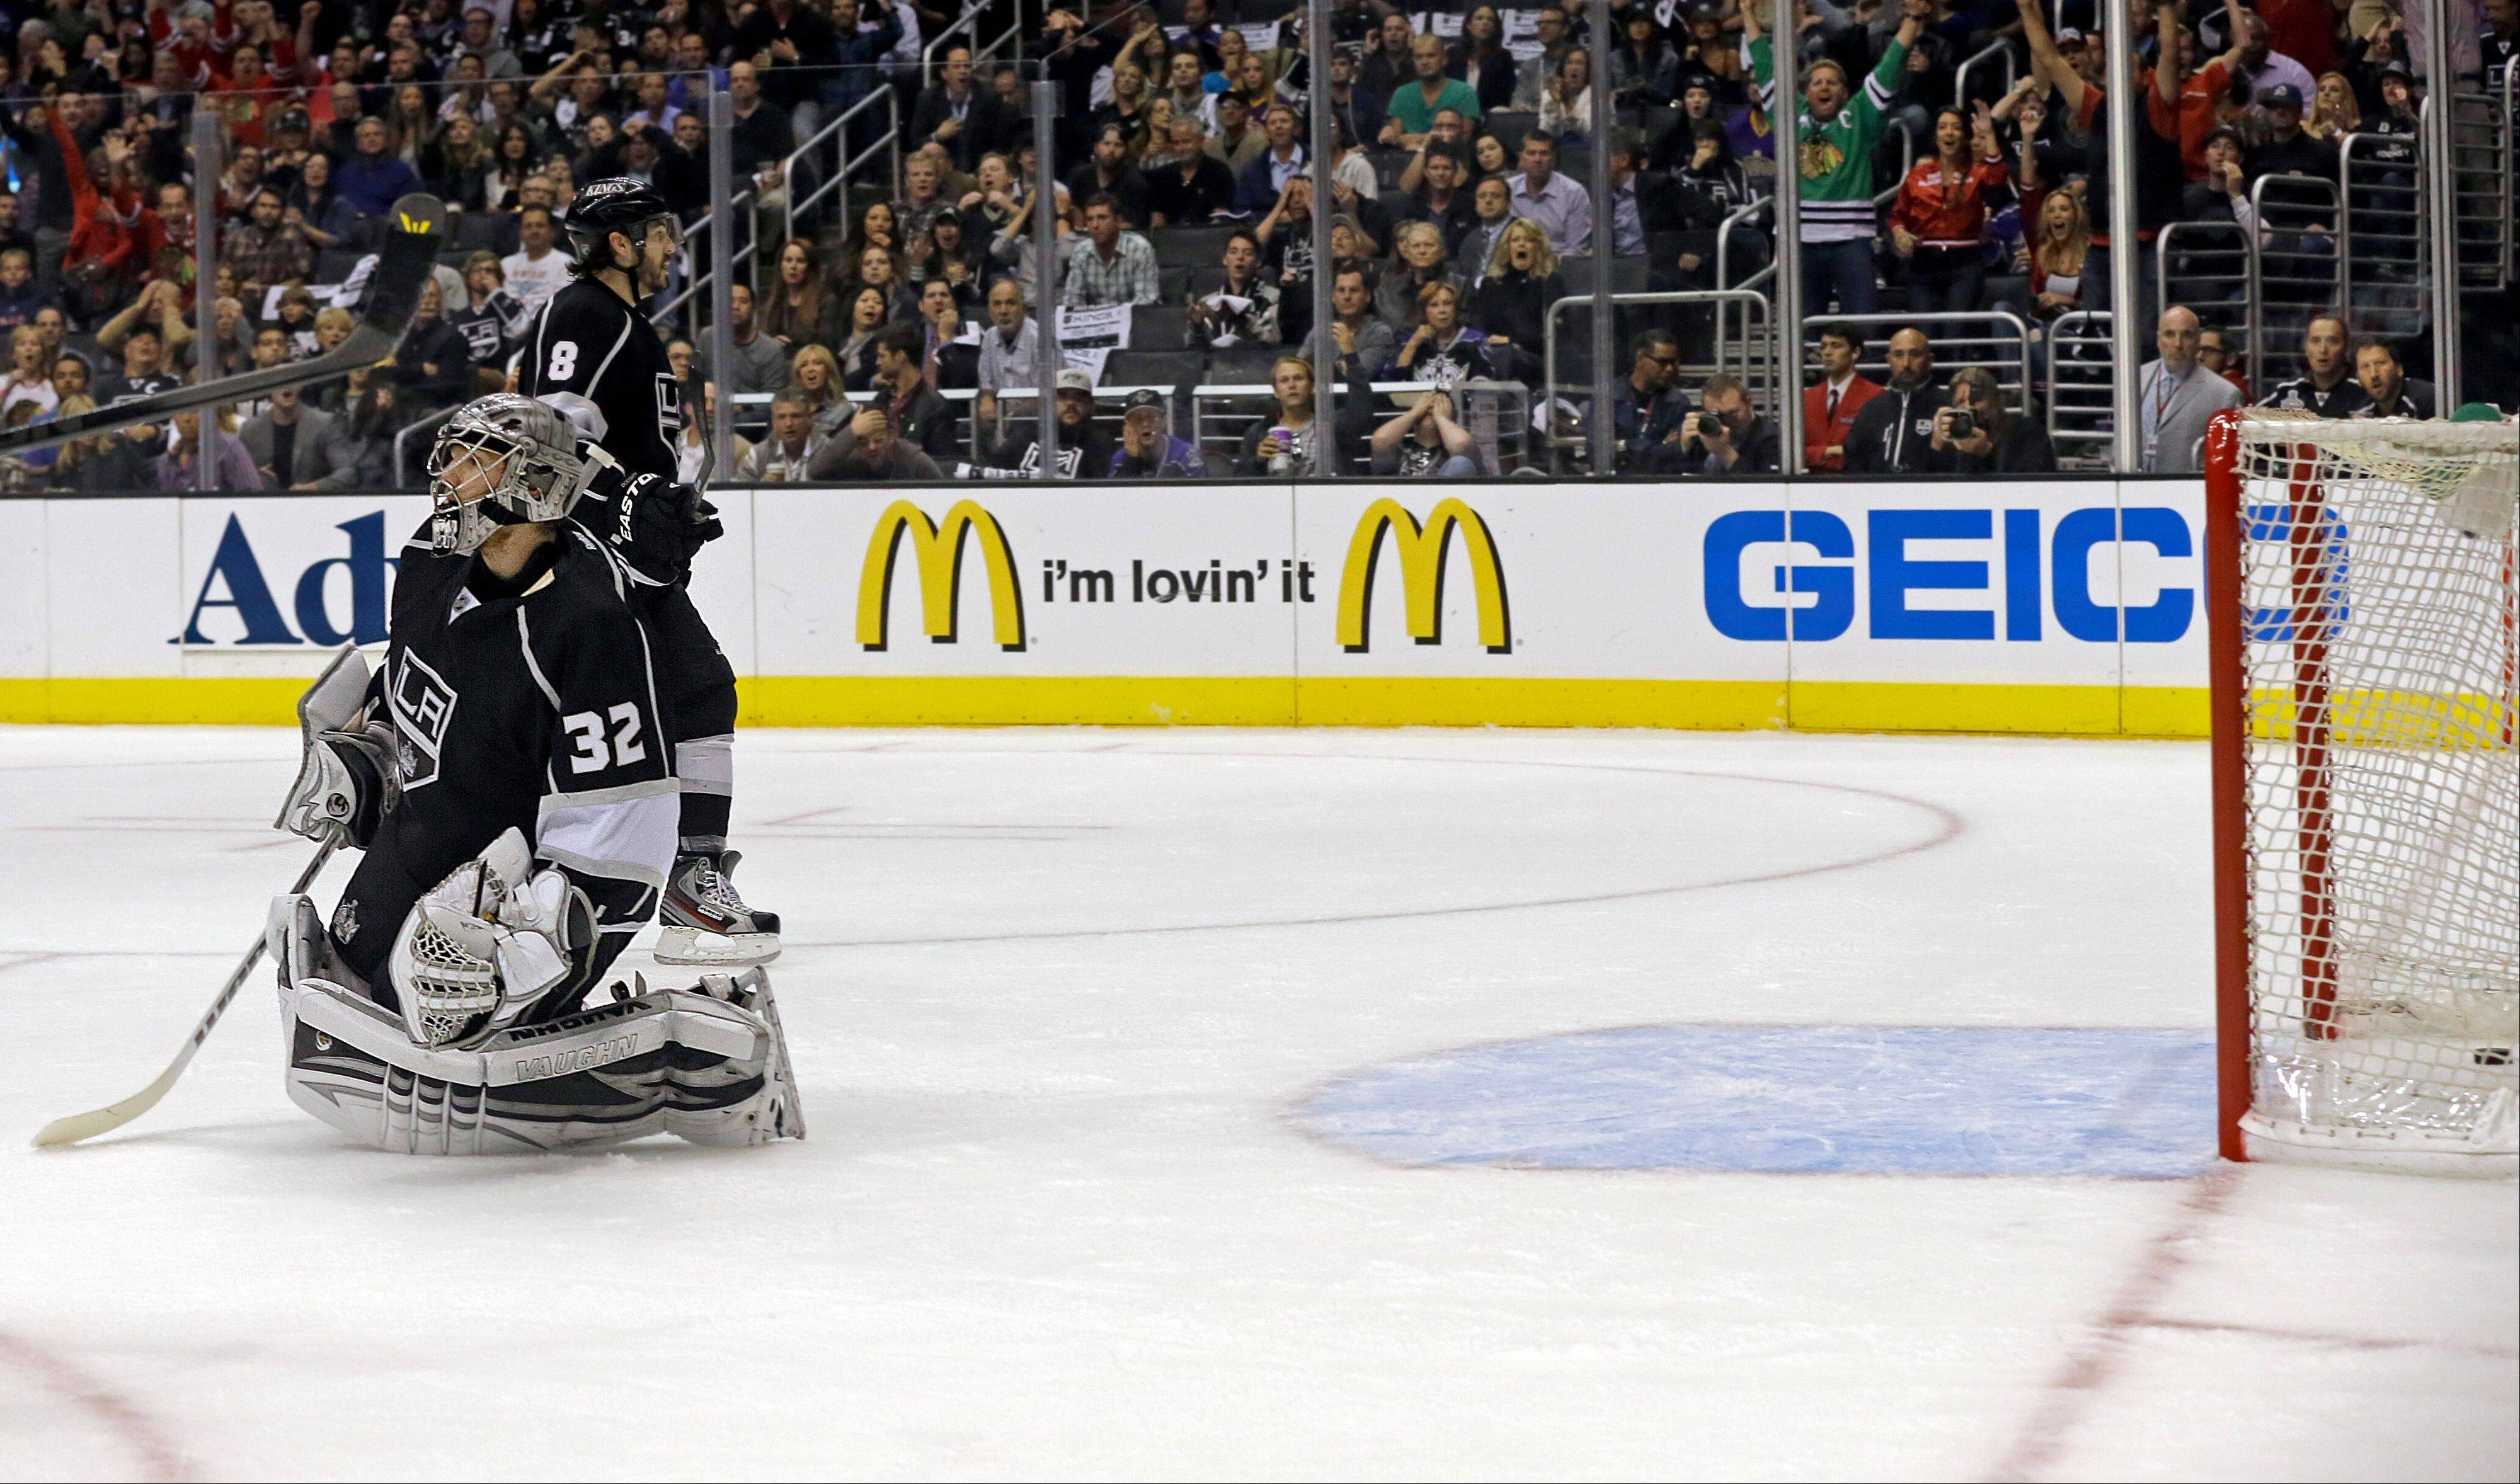 Los Angeles Kings goalie Jonathan Quick (32) kneels outside the goal after a goal by Chicago Blackhawks left winger Bryan Bickell during the first period of Game 3 of the NHL hockey Stanley Cup playoffs Western Conference finals, in Los Angeles on Thursday, June 6, 2013.